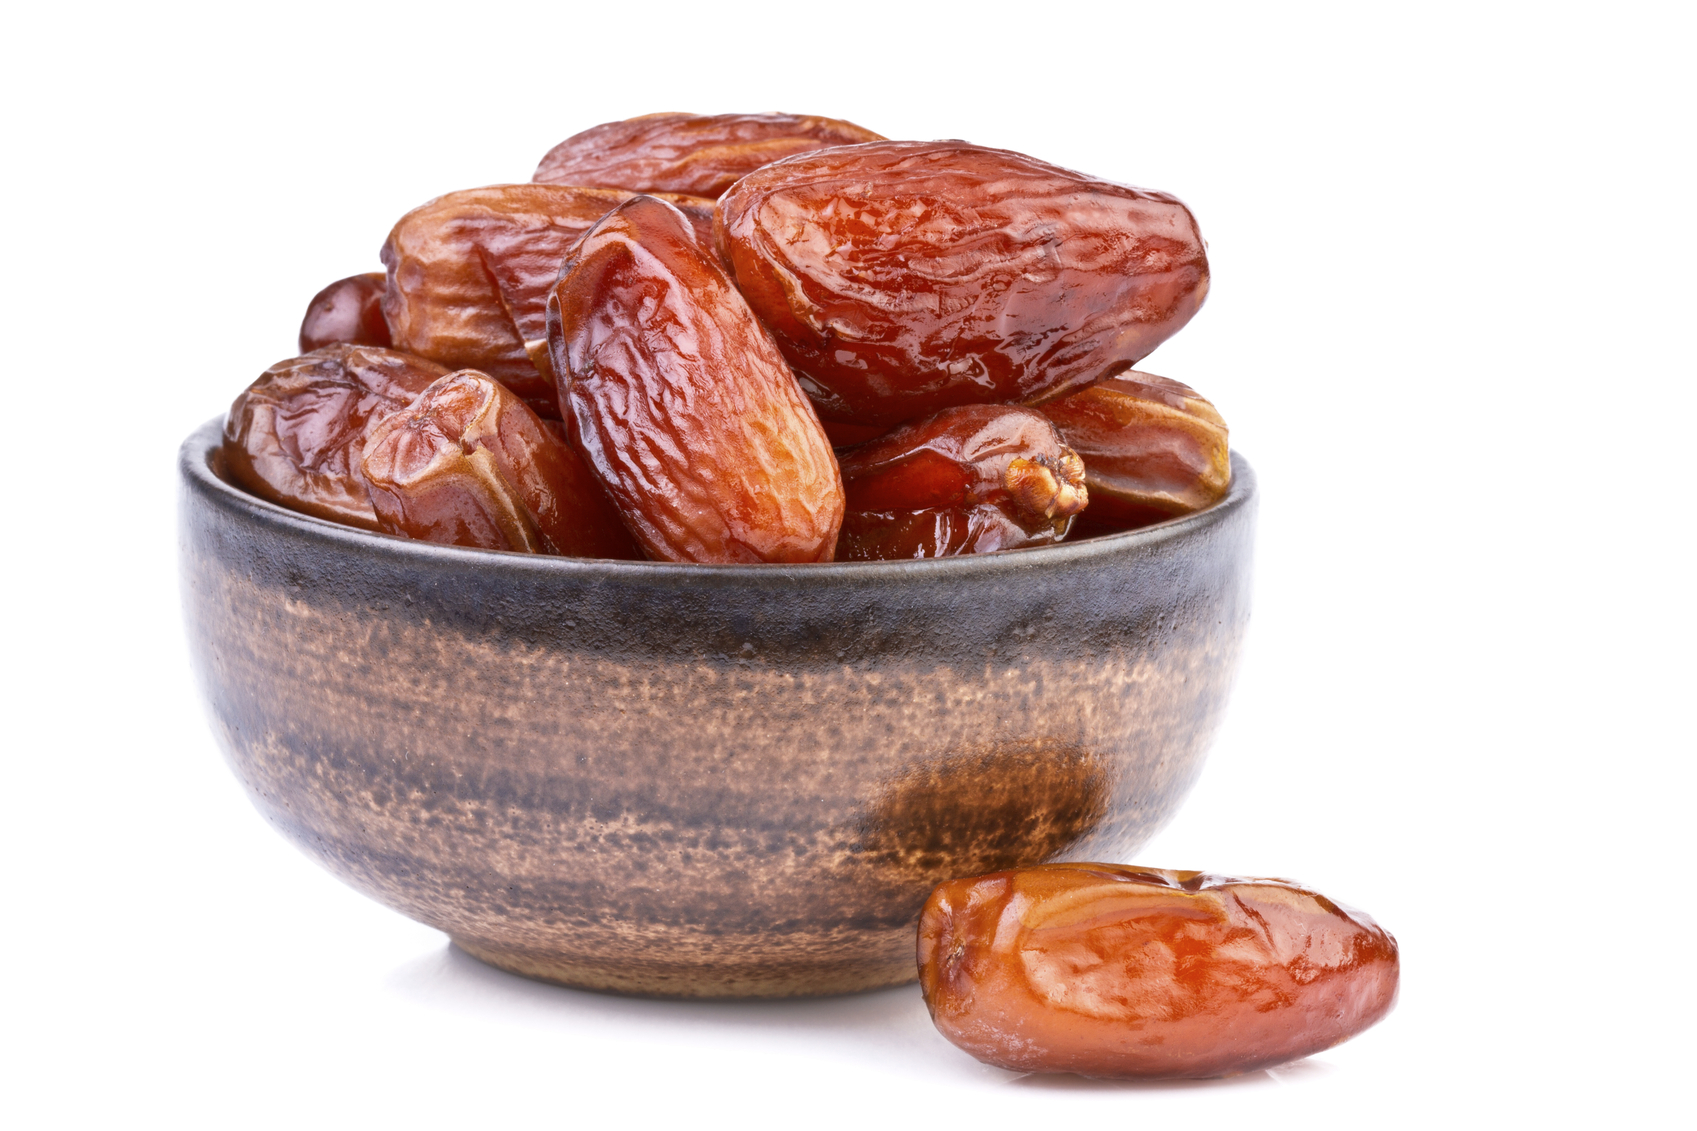 What is a date fruit in Australia